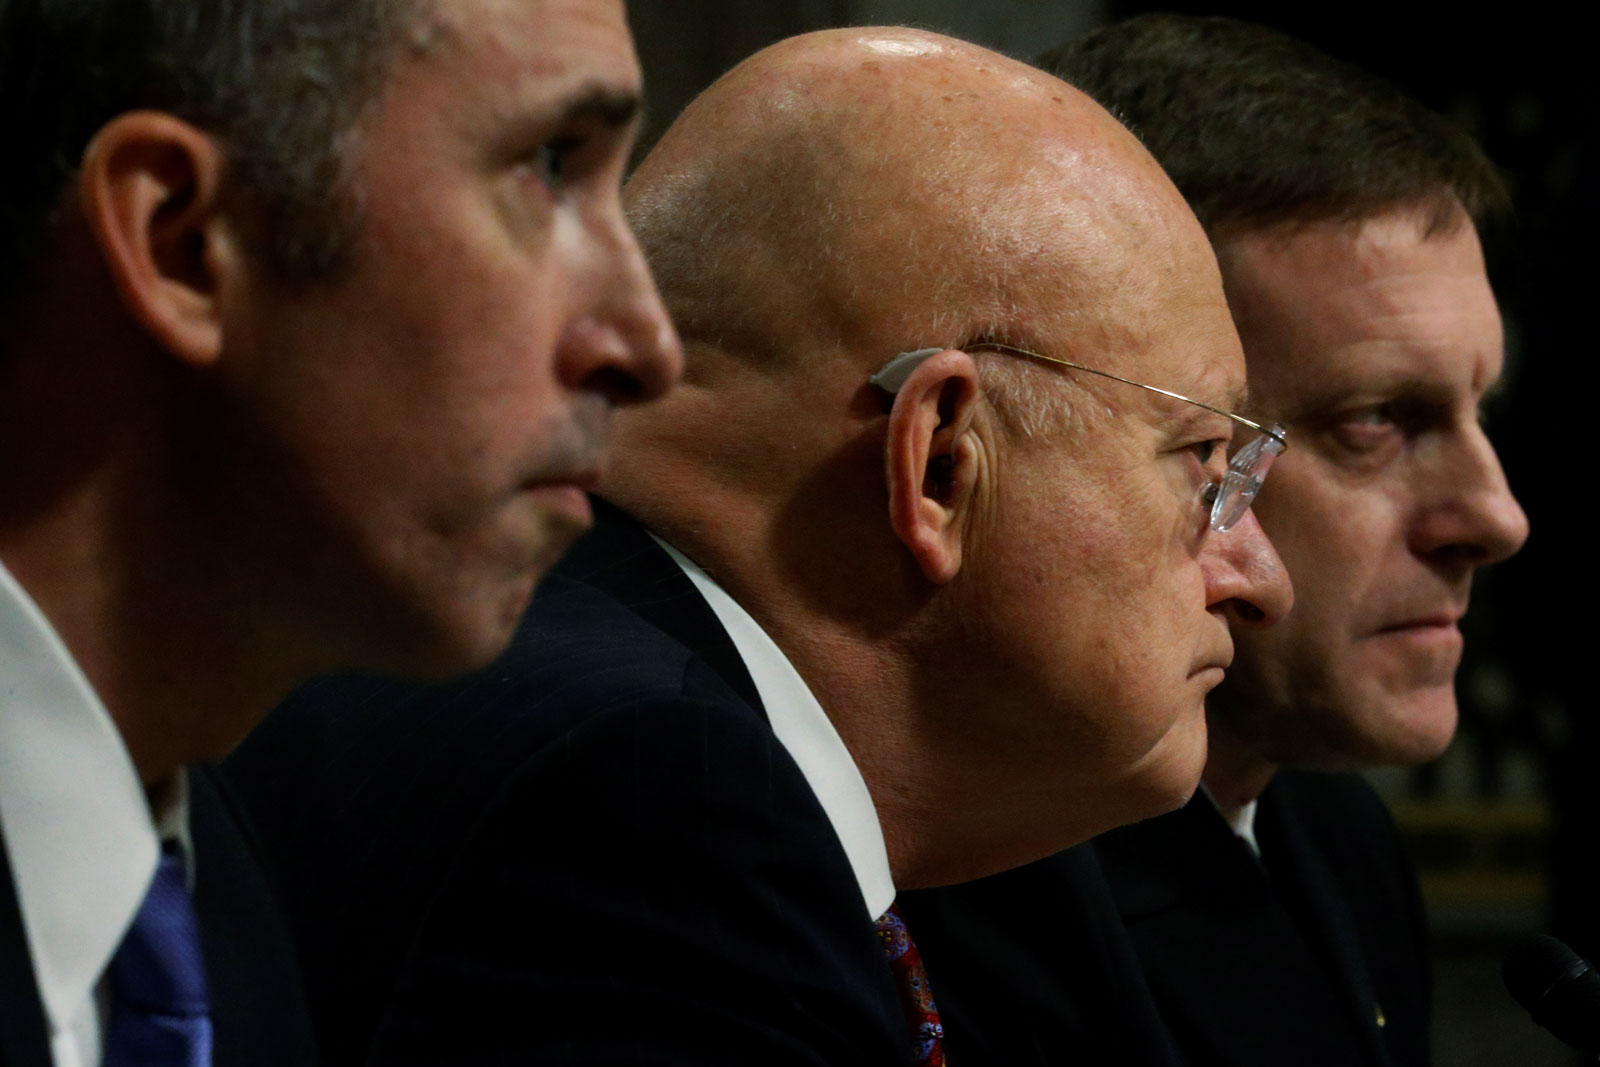 US Defense Under Secretary for Intelligence Marcel Lettre, Director of National Intelligence James Clapper, and National Security Agency Director Michael Rogers testifying before the Senate, Washington, D.C., January 5, 2017